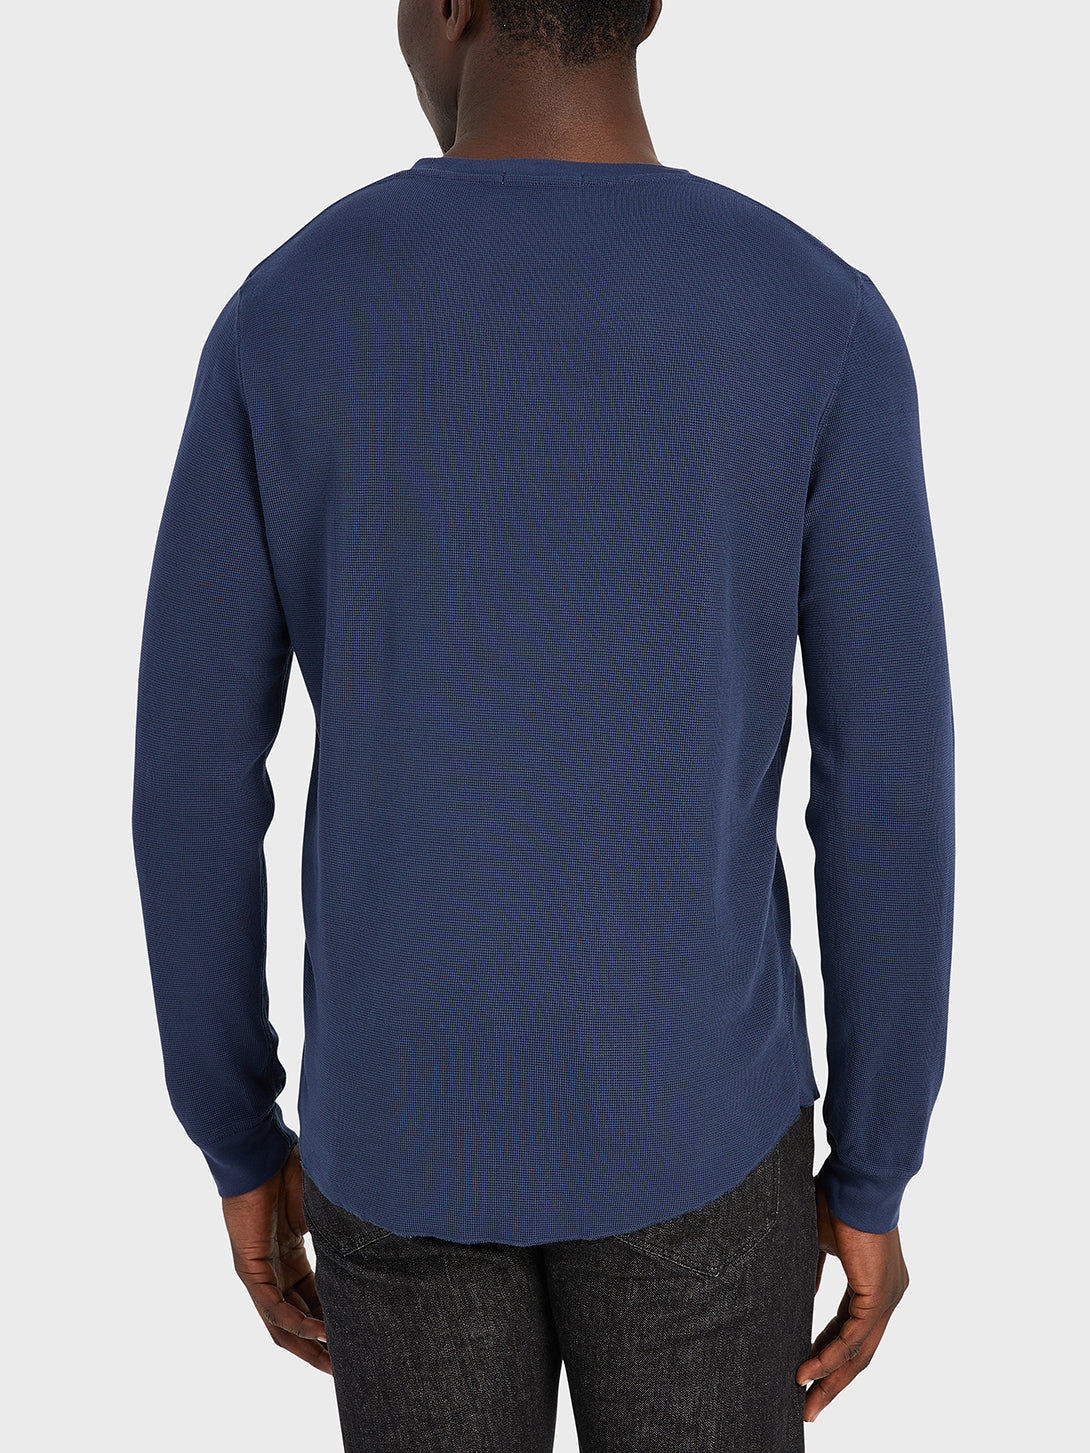 ONS Clothing Men's WAFFLE L/S VILLAGE CREW Pre-shrunk Cotton in NAVY black friday deals